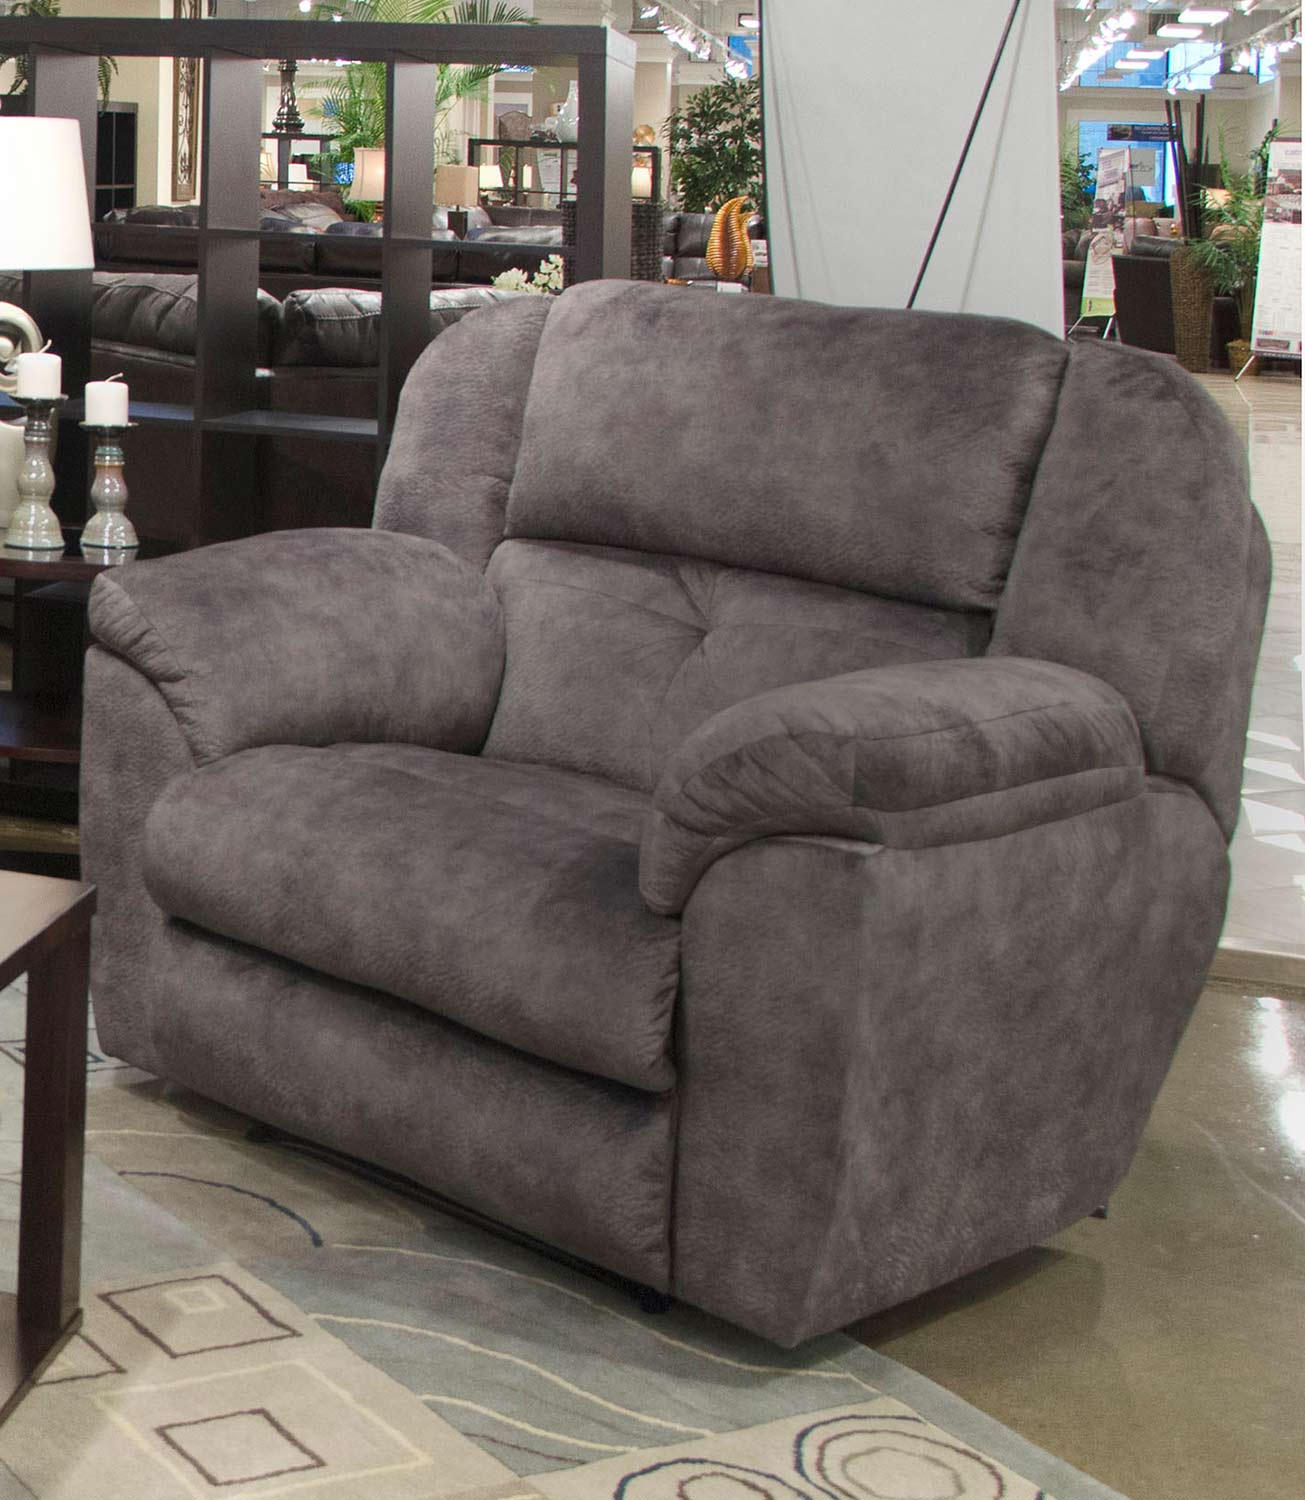 CatNapper Carrington Recliner Chair - Greystone